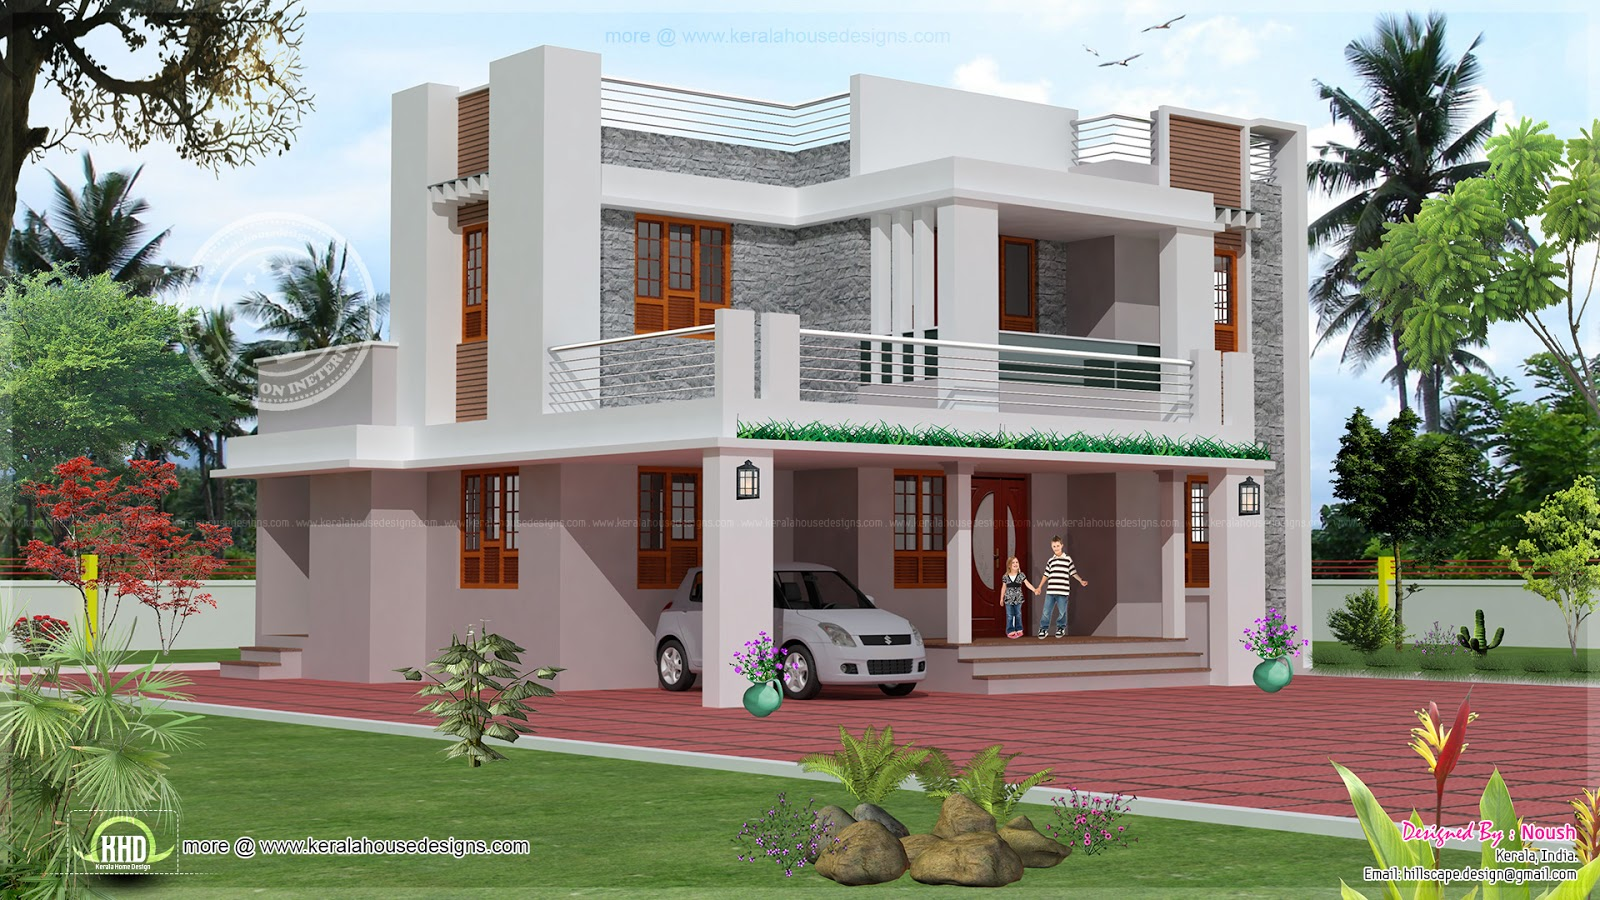 4 bedroom 2 story house exterior design home kerala plans for 2 bedroom house designs in india